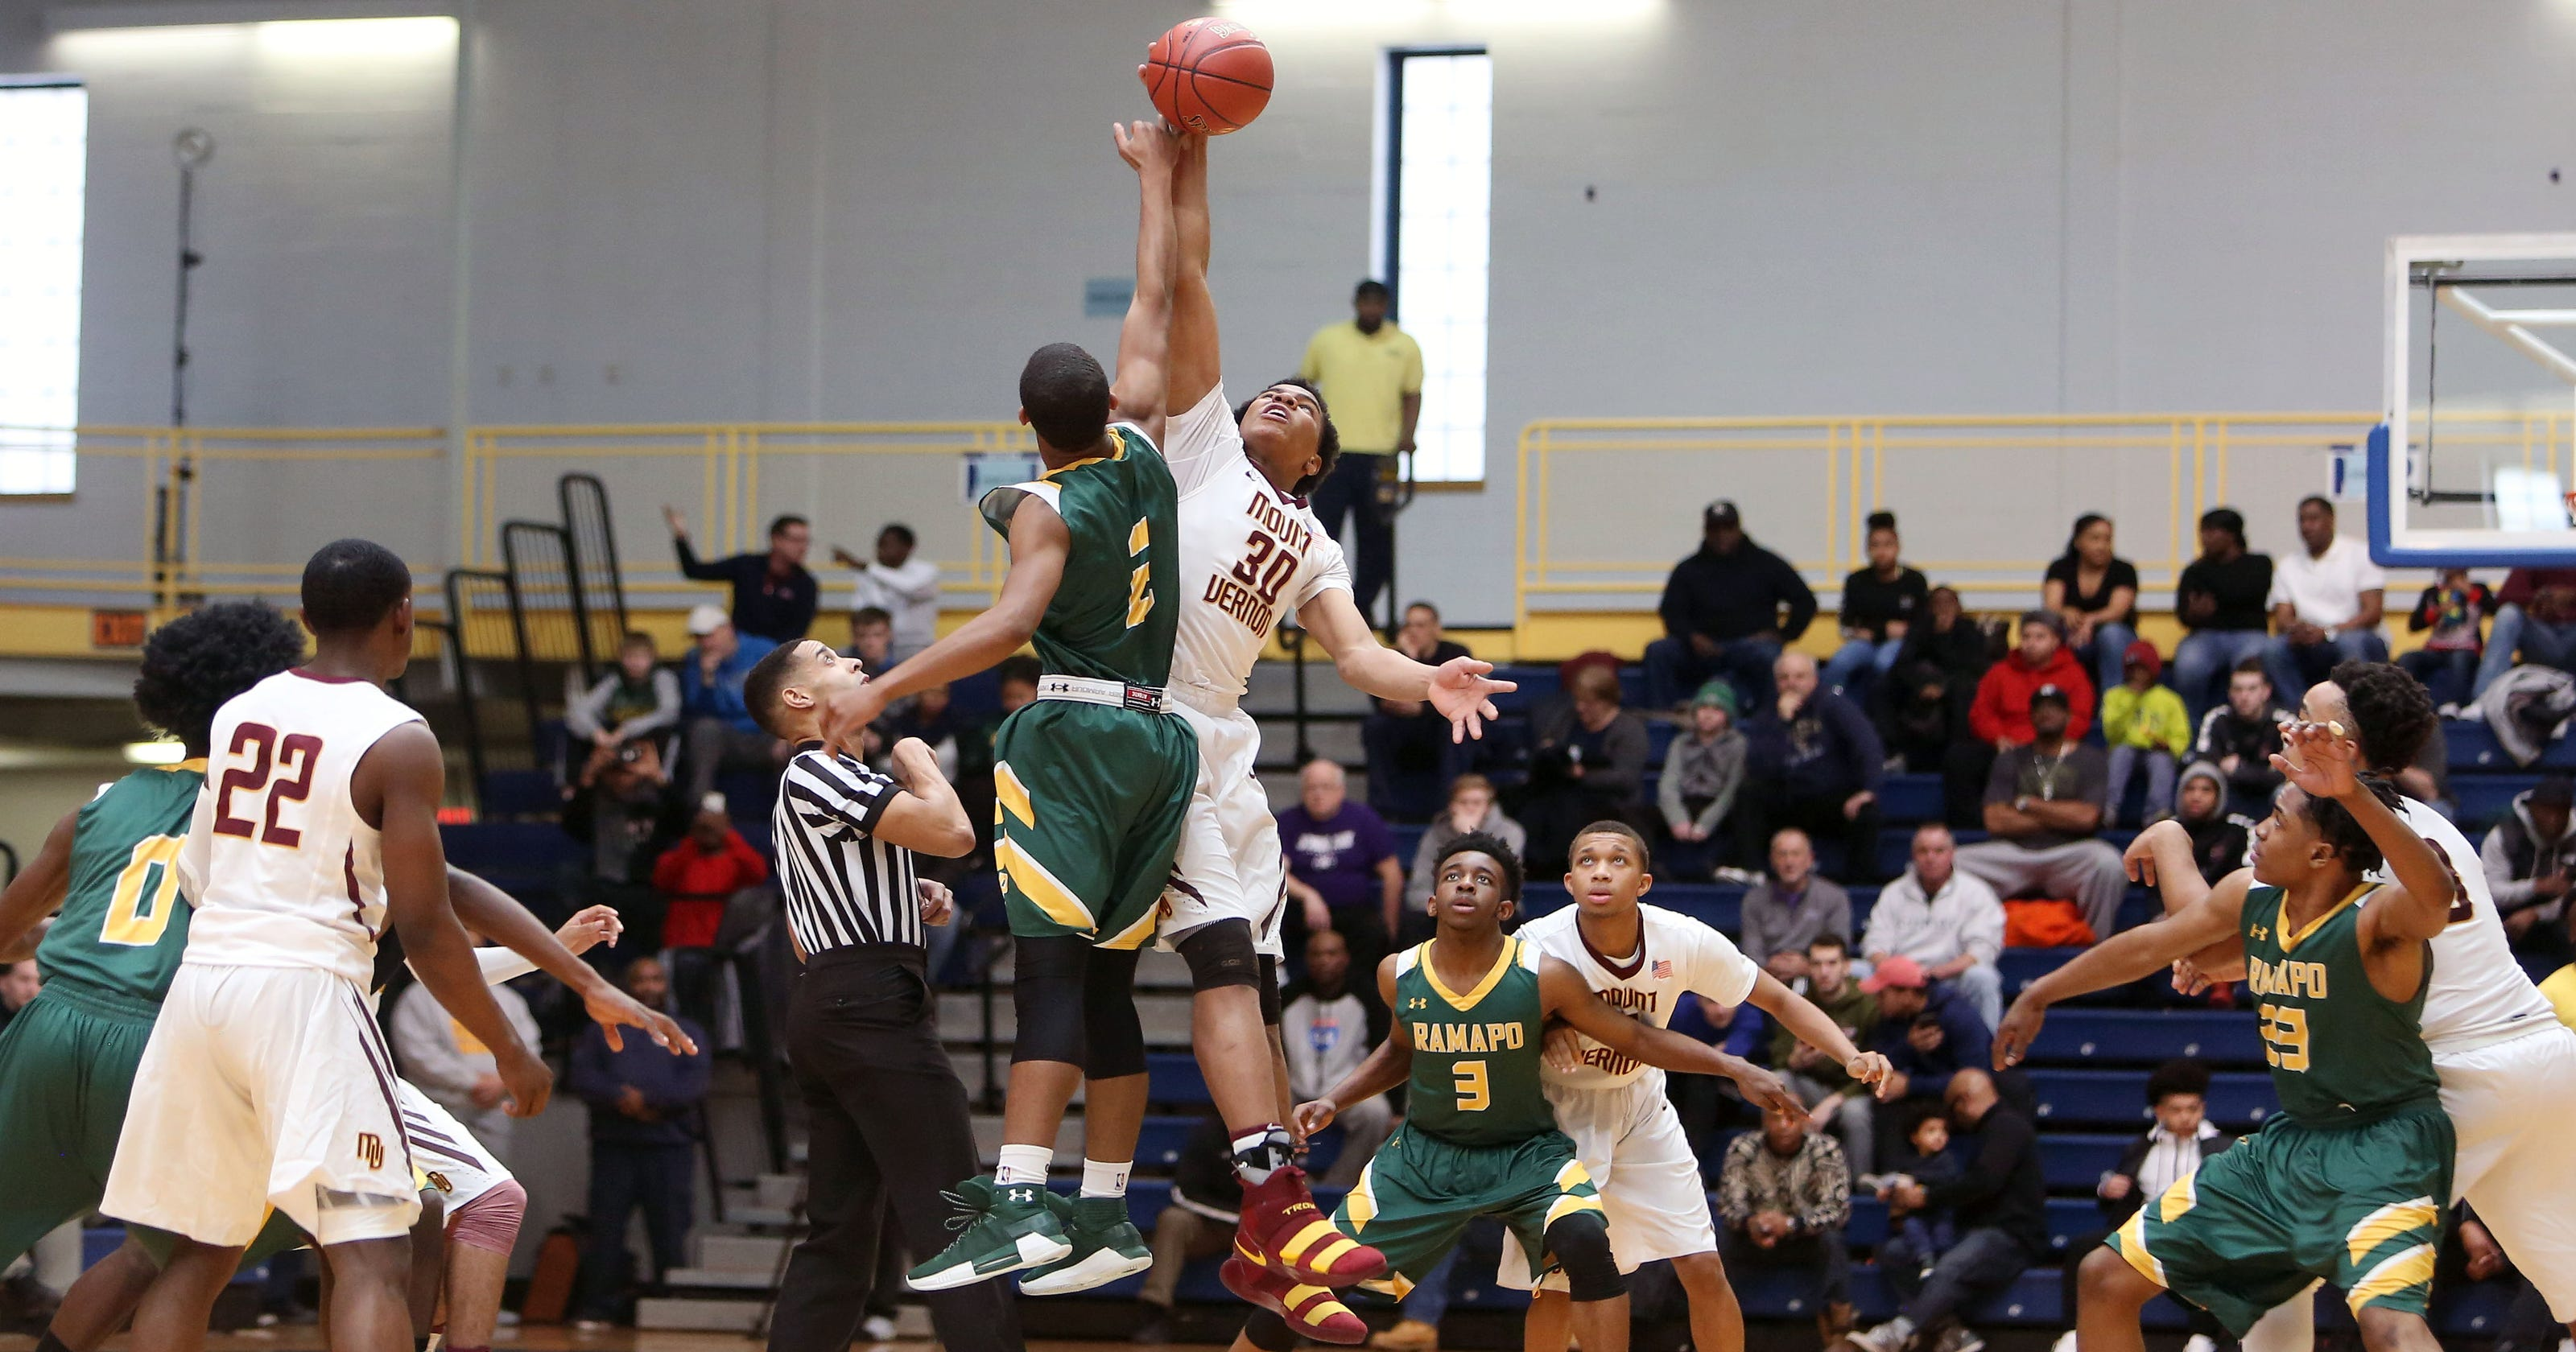 ec7ff94273 Boys basketball: Find out more about Section 1, CHSAA teams in our 2018-19  previews